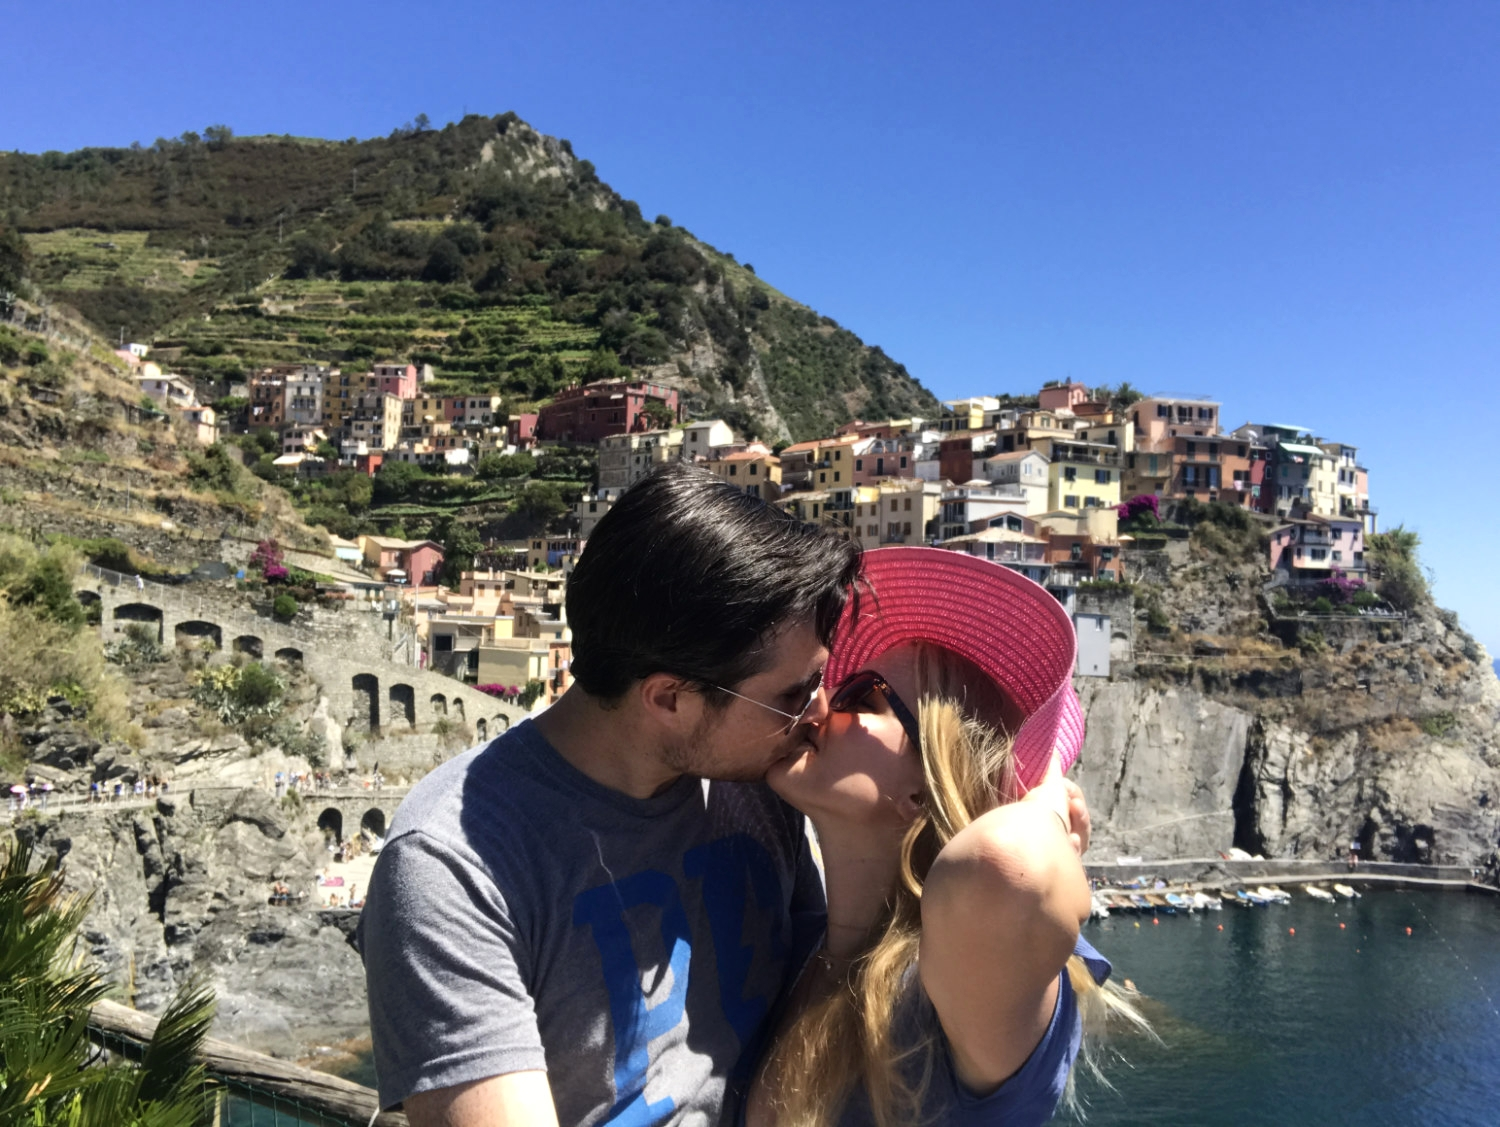 Celebrating two years of marriage in the Cinque Terre.